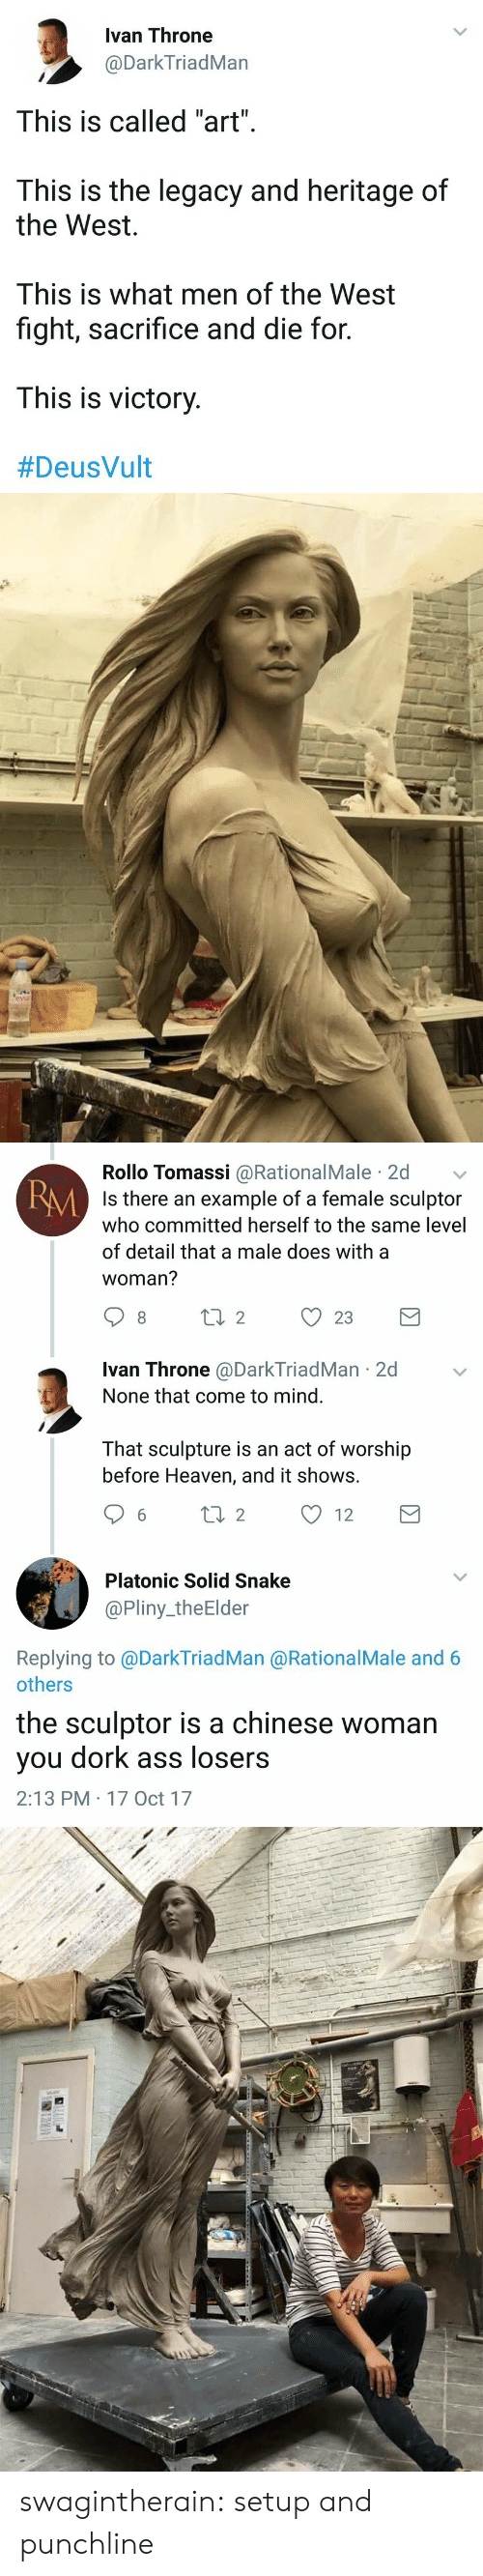 """Nones: Ivan Throne  @DarkTriadMan  This is called """"art"""".  This is the legacy and heritage of  the West  This is what men of the West  fight, sacrifice and die for  This is victory  #DeusVult   Rollo Tomassi @RationalMale 2d  Is there an example of a female sculptor  who committed herself to the same level  of detail that a male does with a  woman?  RM  Ivan Throne @DarkTriadMan 2d  None that come to mind.  That sculpture is an act of worship  before Heaven, and it shows.  6 ti 2 12  Platonic Solid Snake  @Pliny_theElder  Replying to @DarkTriadMan @RationalMale and 6  others  the sculptor is a chinese woman  you dork ass losers  2:13 PM 17 Oct 17 swagintherain:   setup and  punchline"""